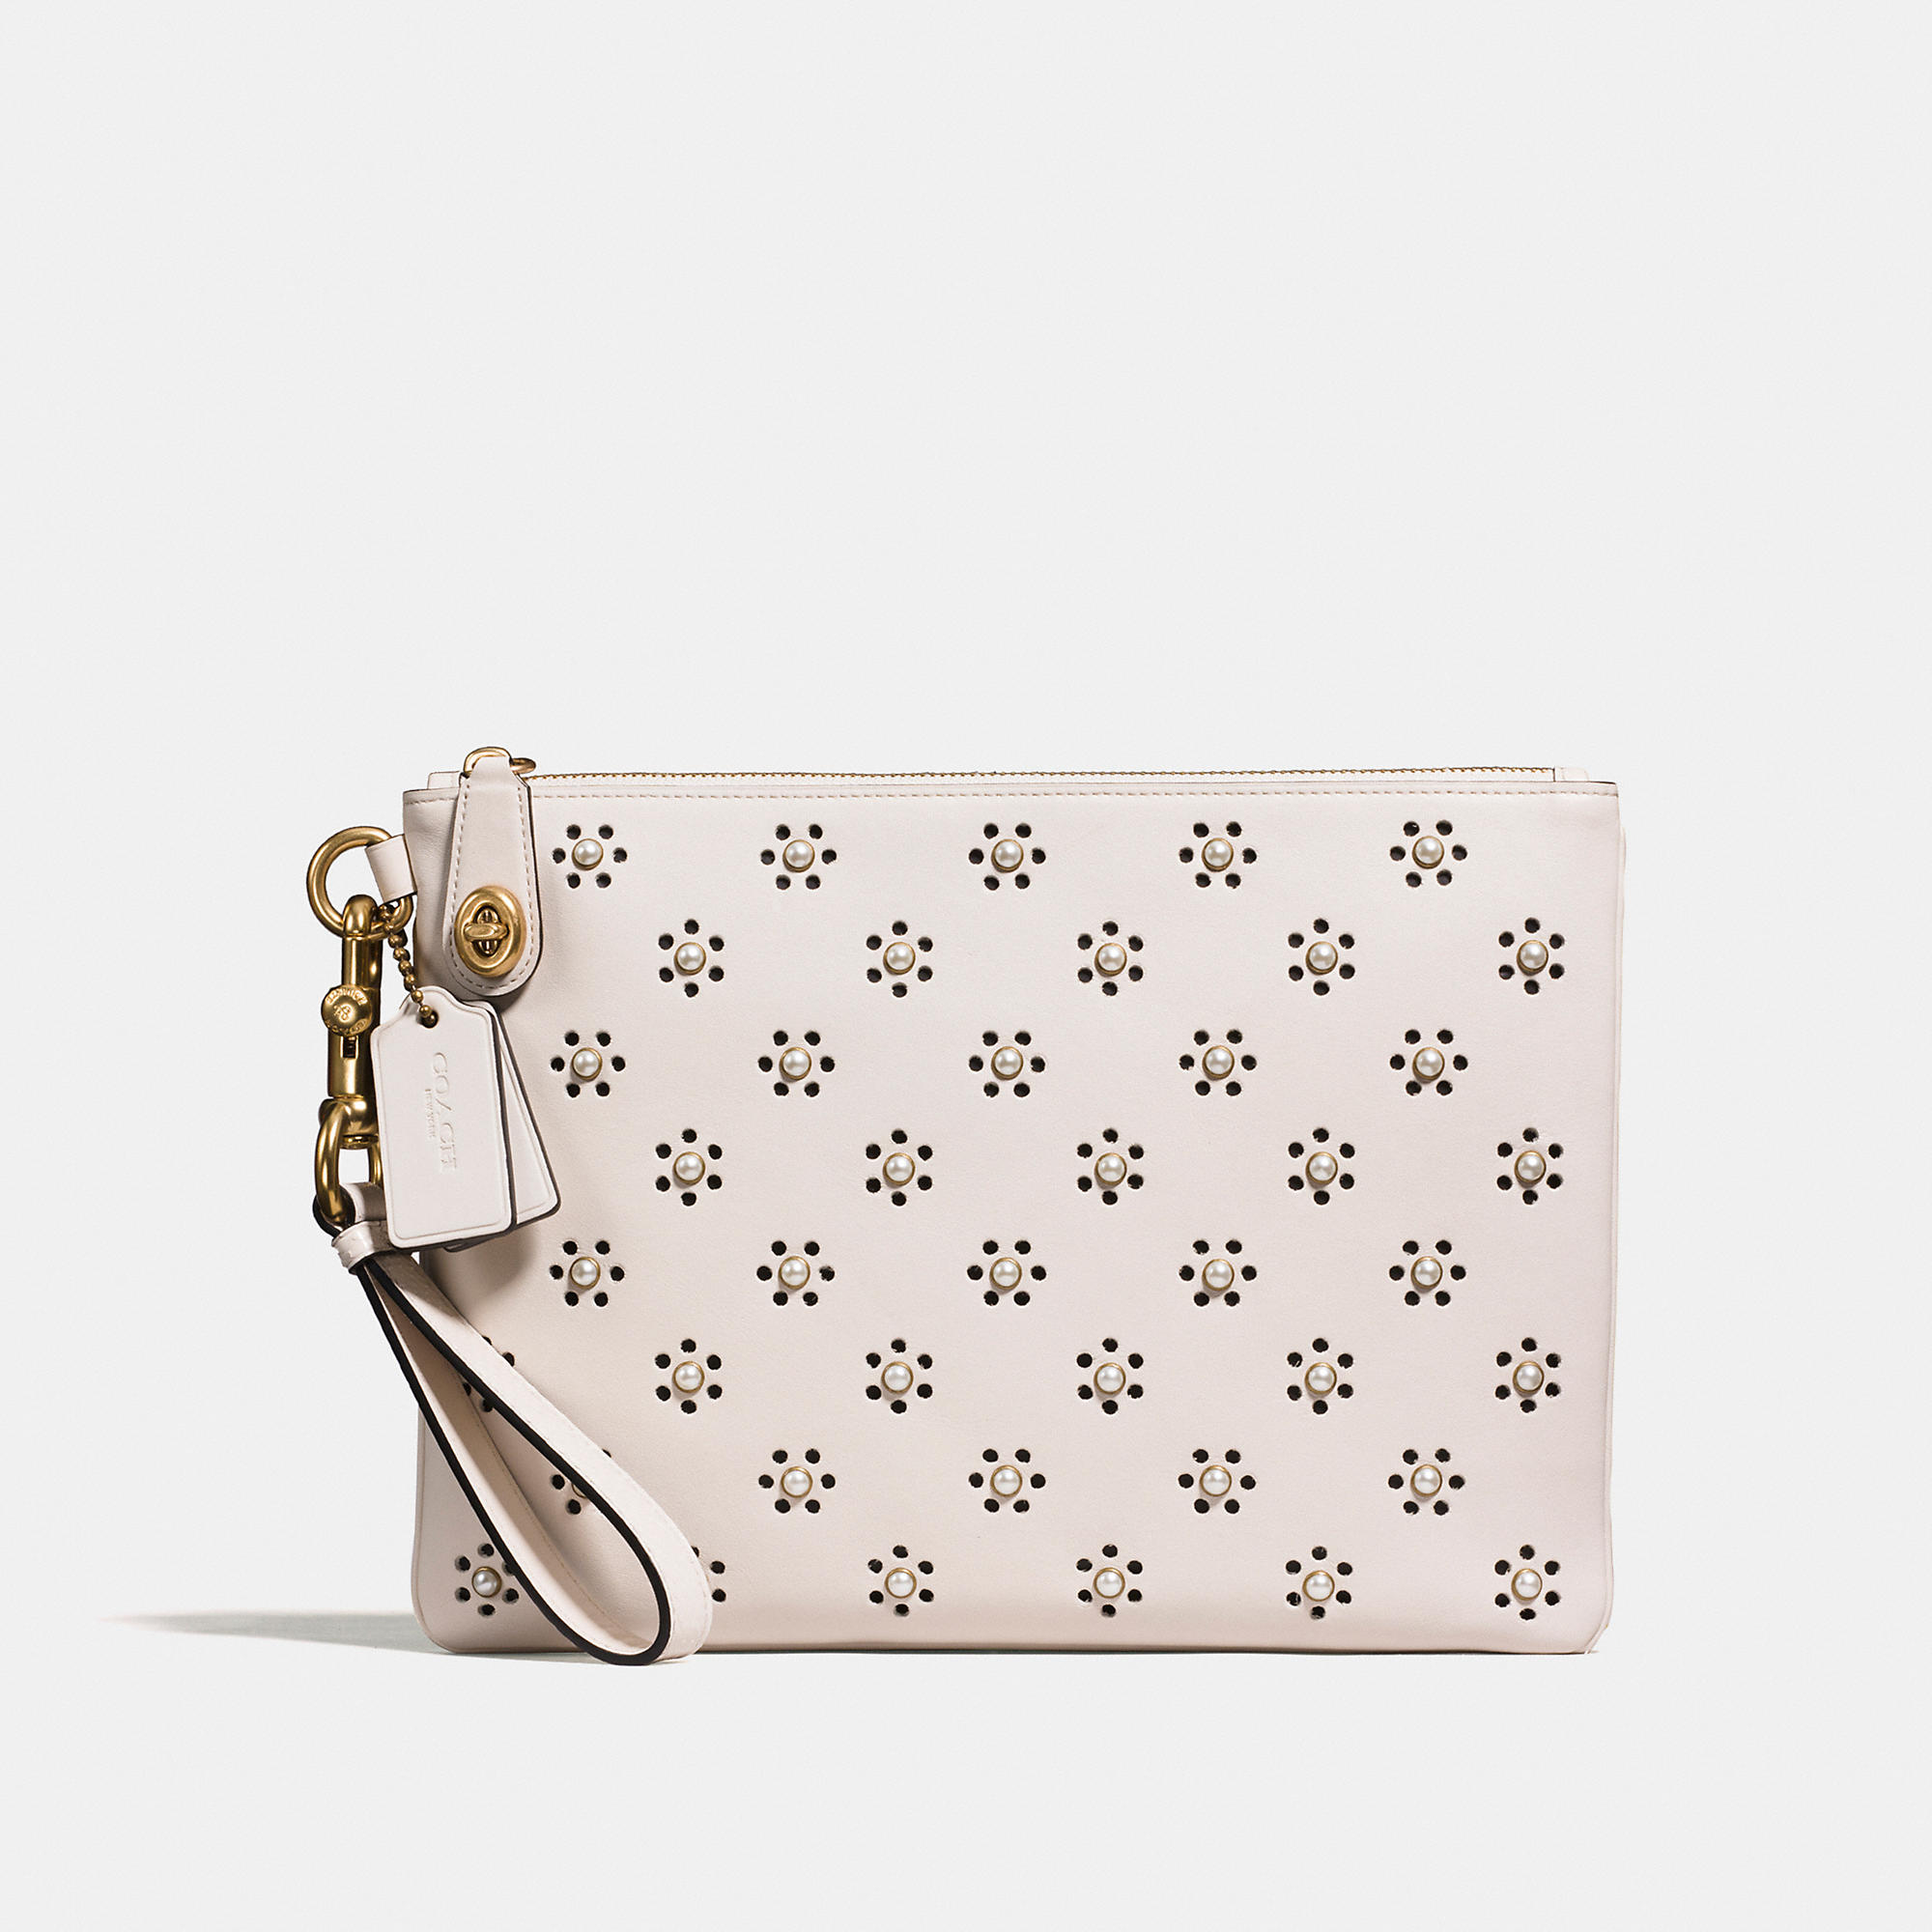 Coach Turnlock Wristlet 30 In Glovetanned Leather With Whipstitch Eyelet